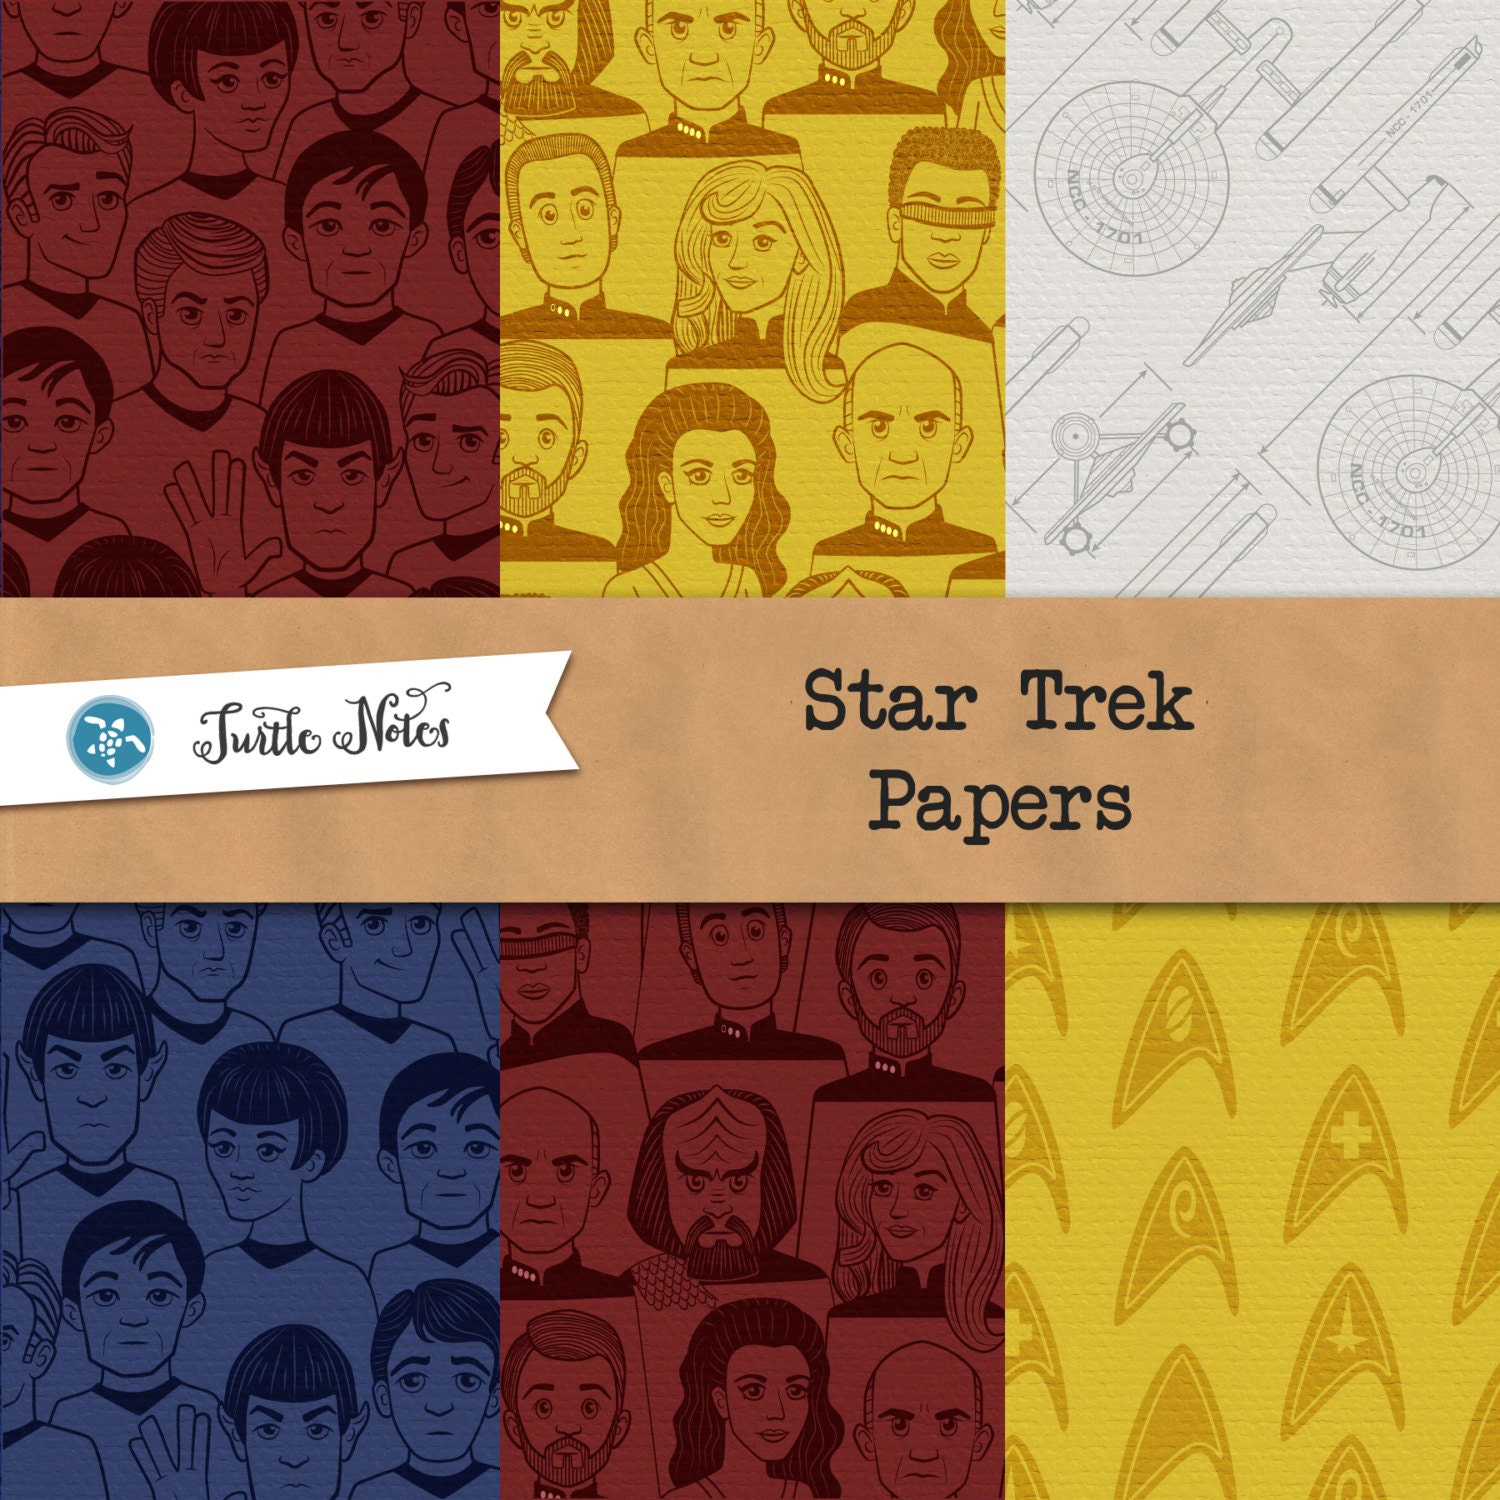 star trek essays 100% free papers on compare and contrast star wars vs star trek essays sample topics, paragraph introduction help, research & more class 1-12, high school & college.